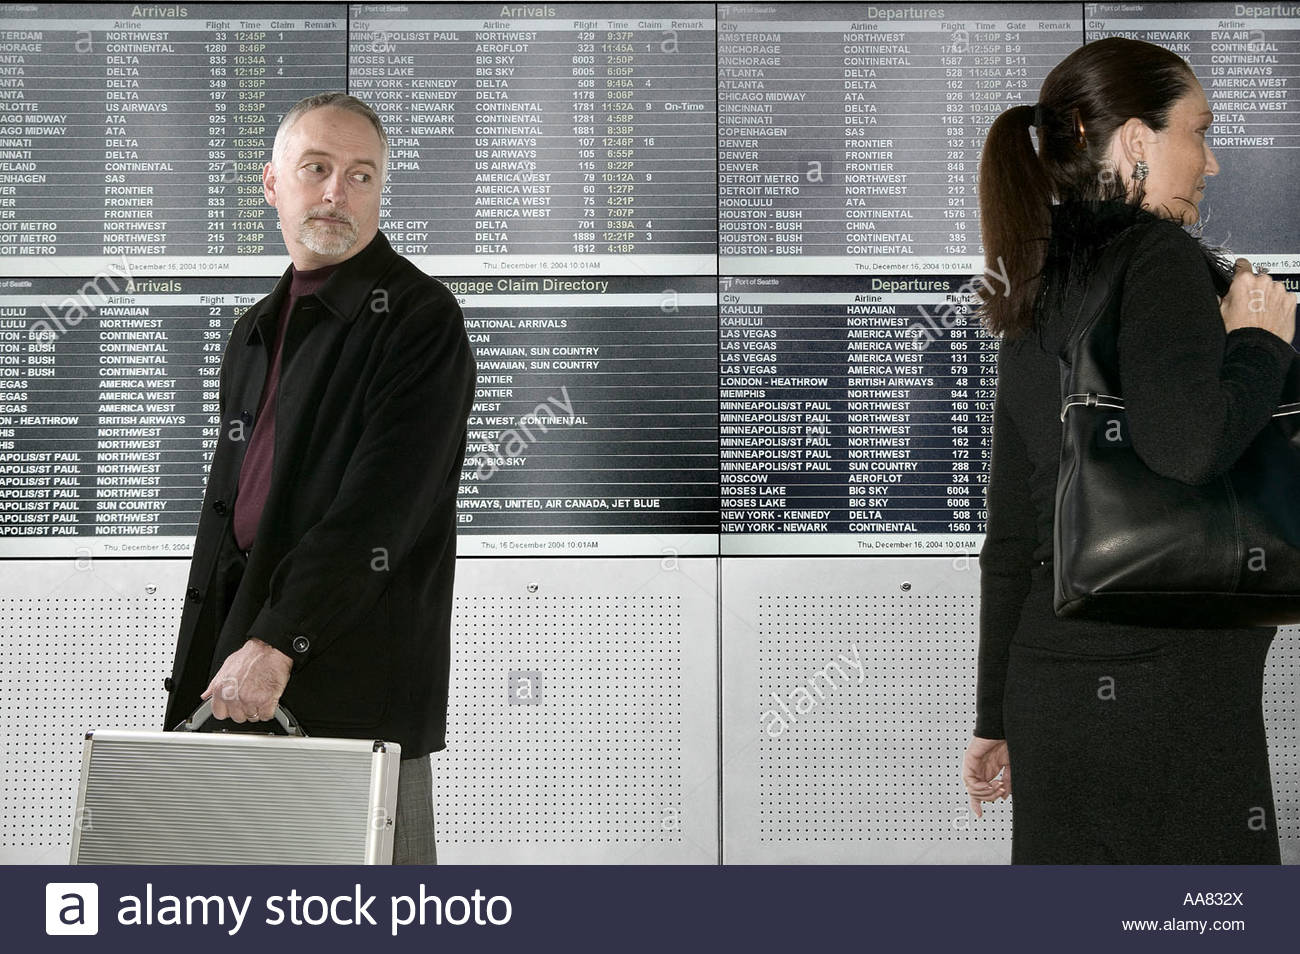 Man looking at younger woman in airport - Stock Image